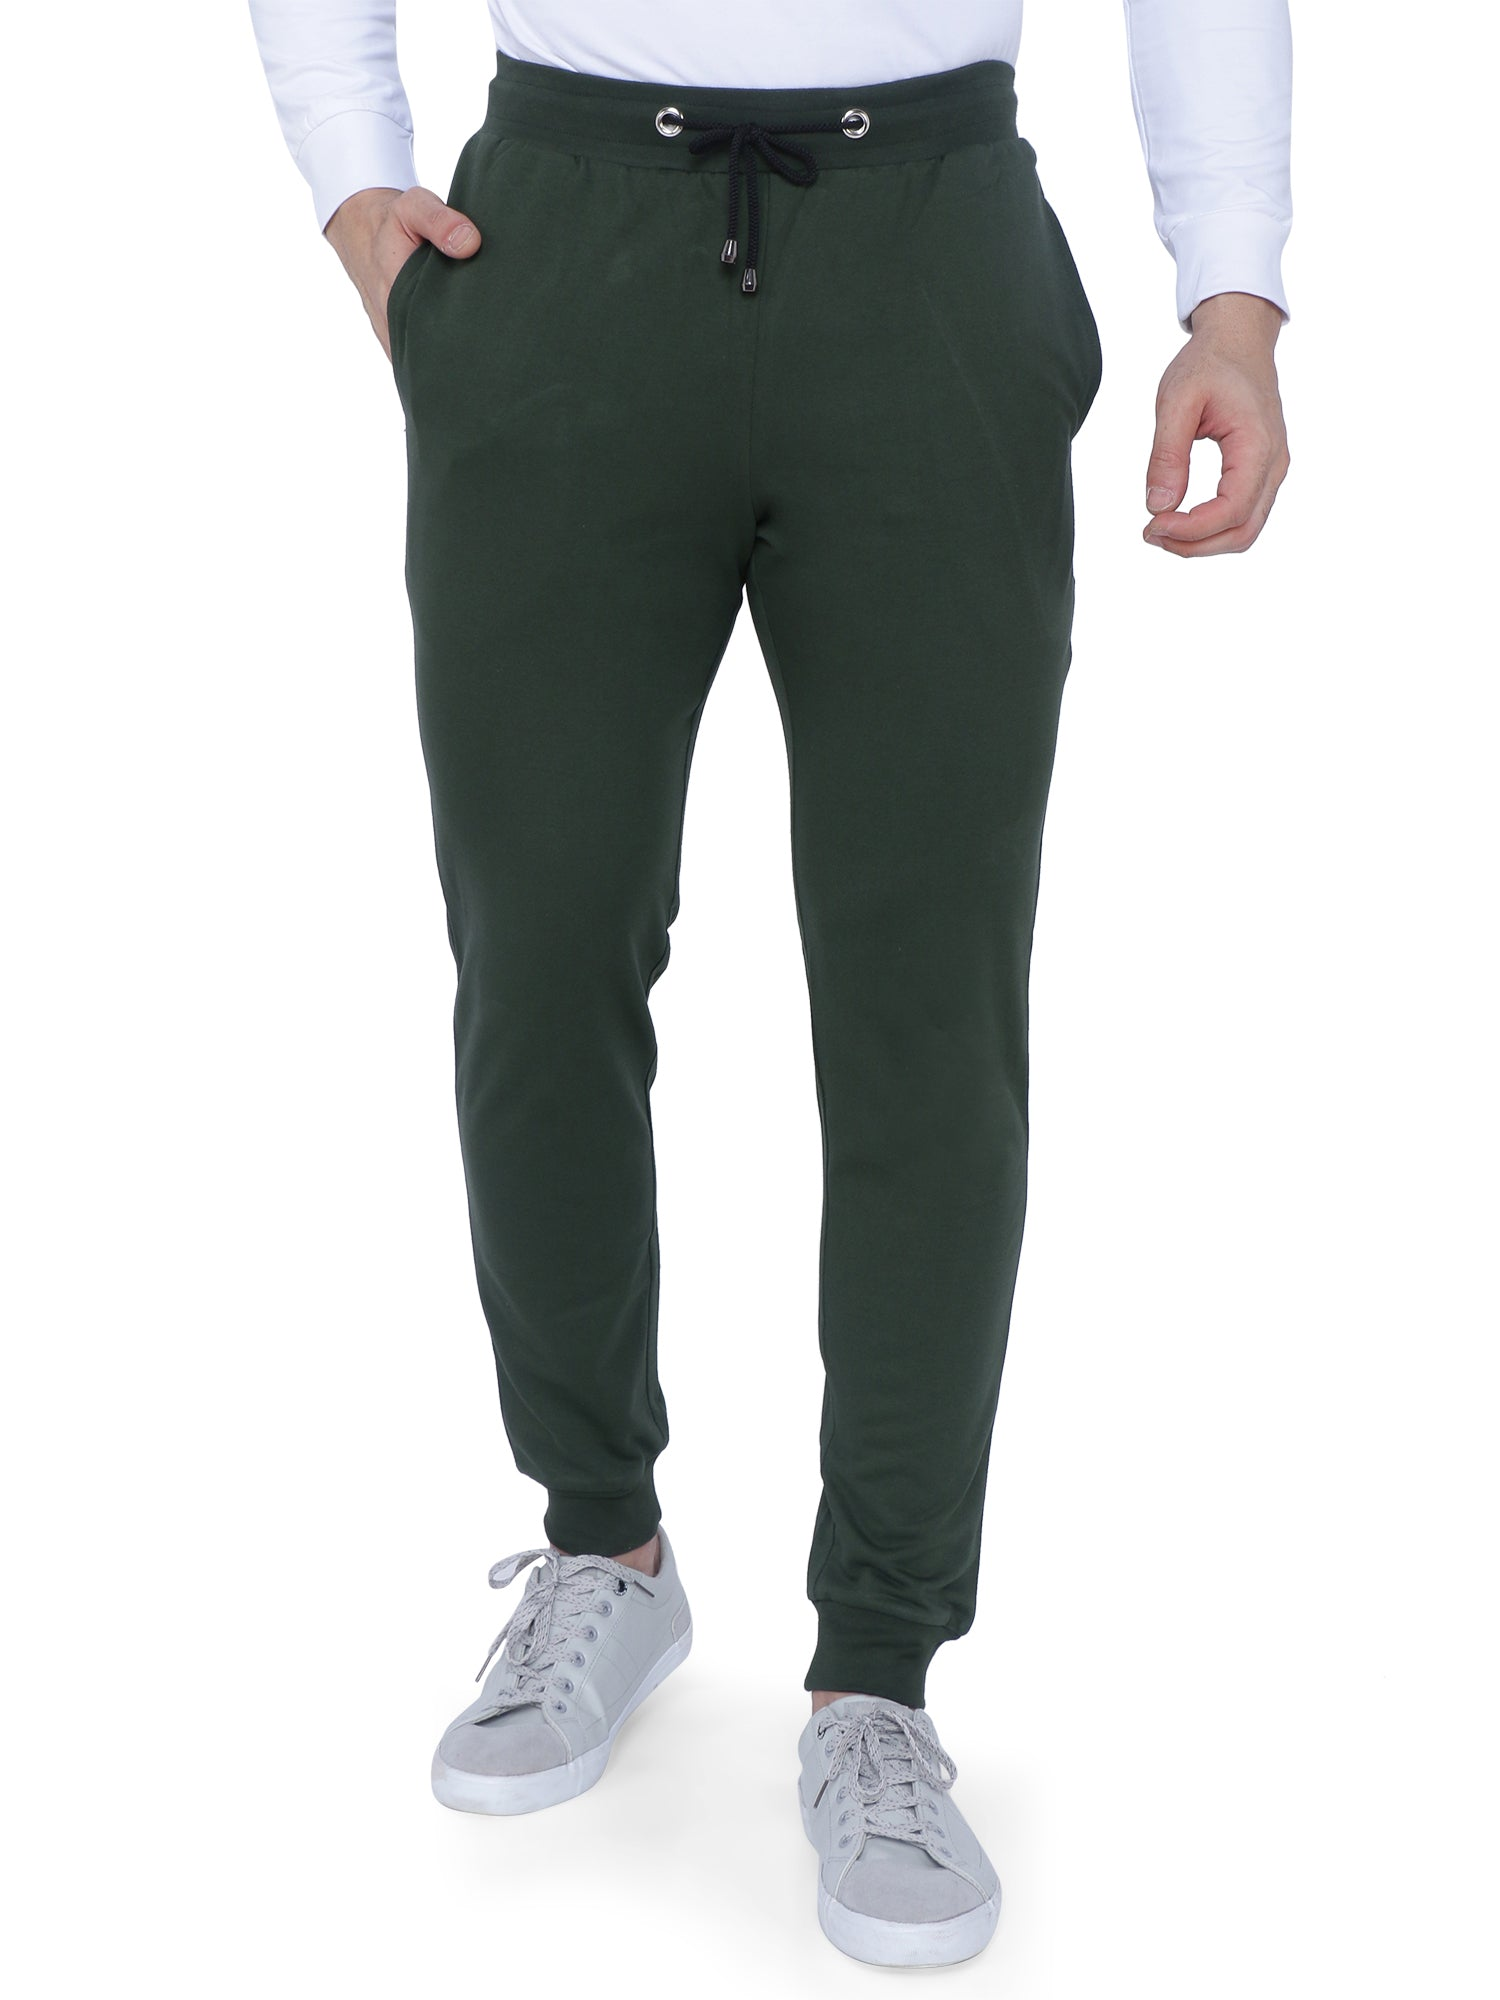 Bueno Life Olive Track Pant with bottom rib, zipper